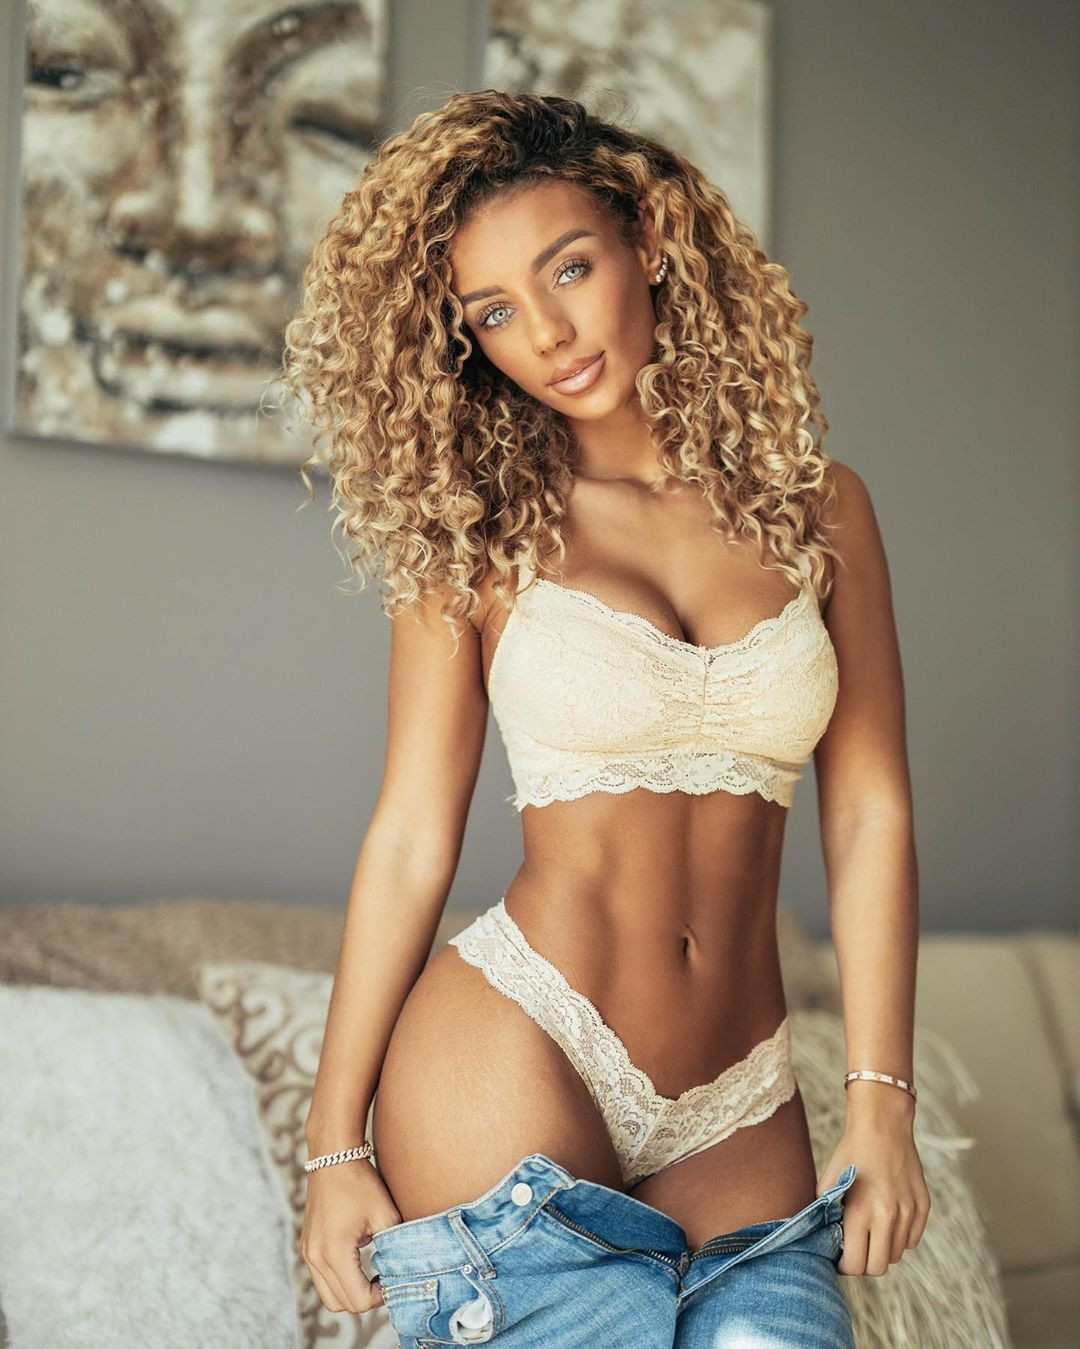 Jena Frumes lingerie outfits for women, photoshoot poses, female thighs